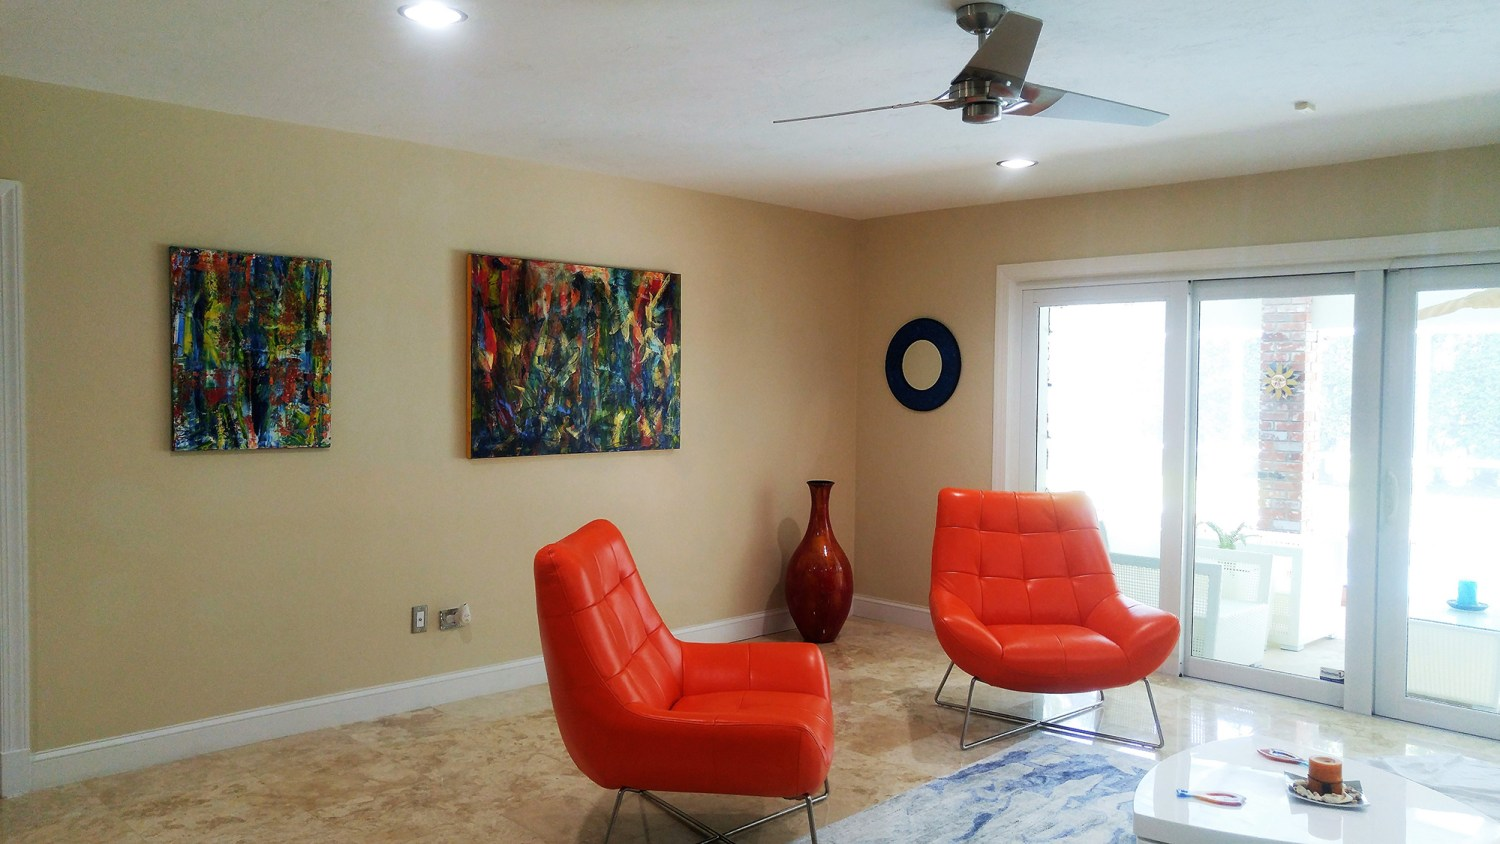 SOLD artwork displayed in the collector's home in Florida. They look amazing in that bright cheerful room!